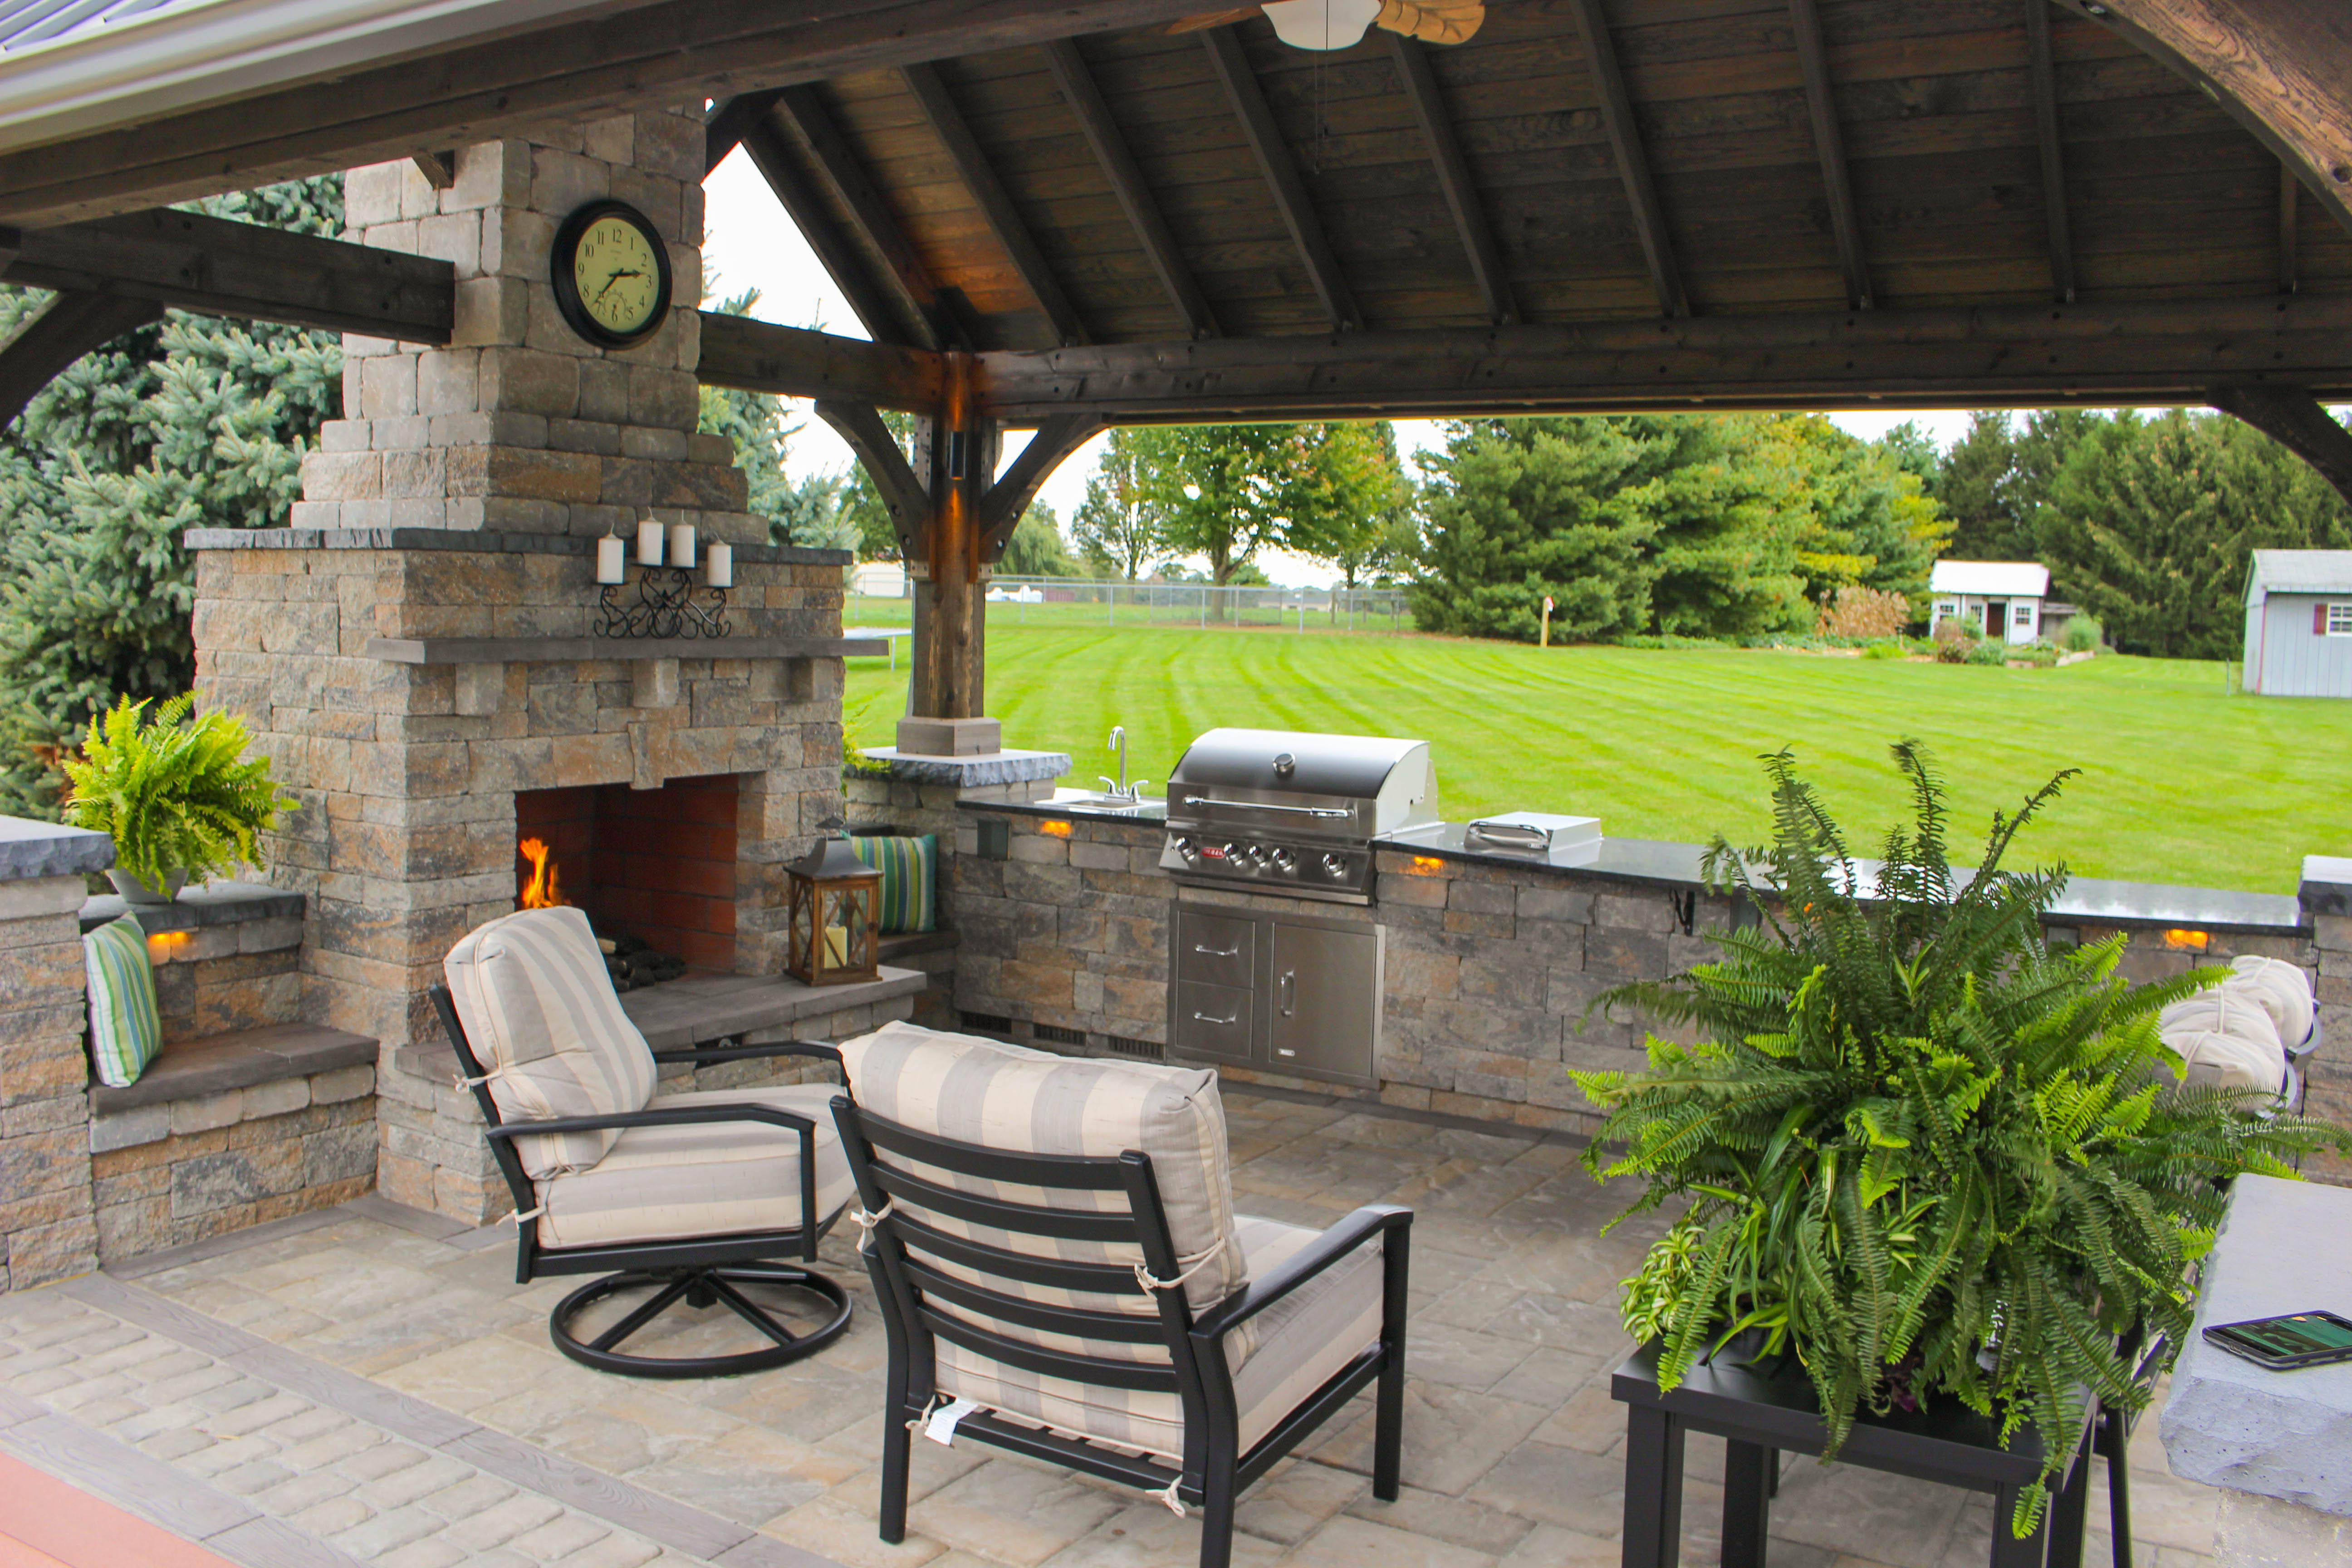 grill for outdoor kitchen how much is a island patio with pavilion | see the photos and get ...